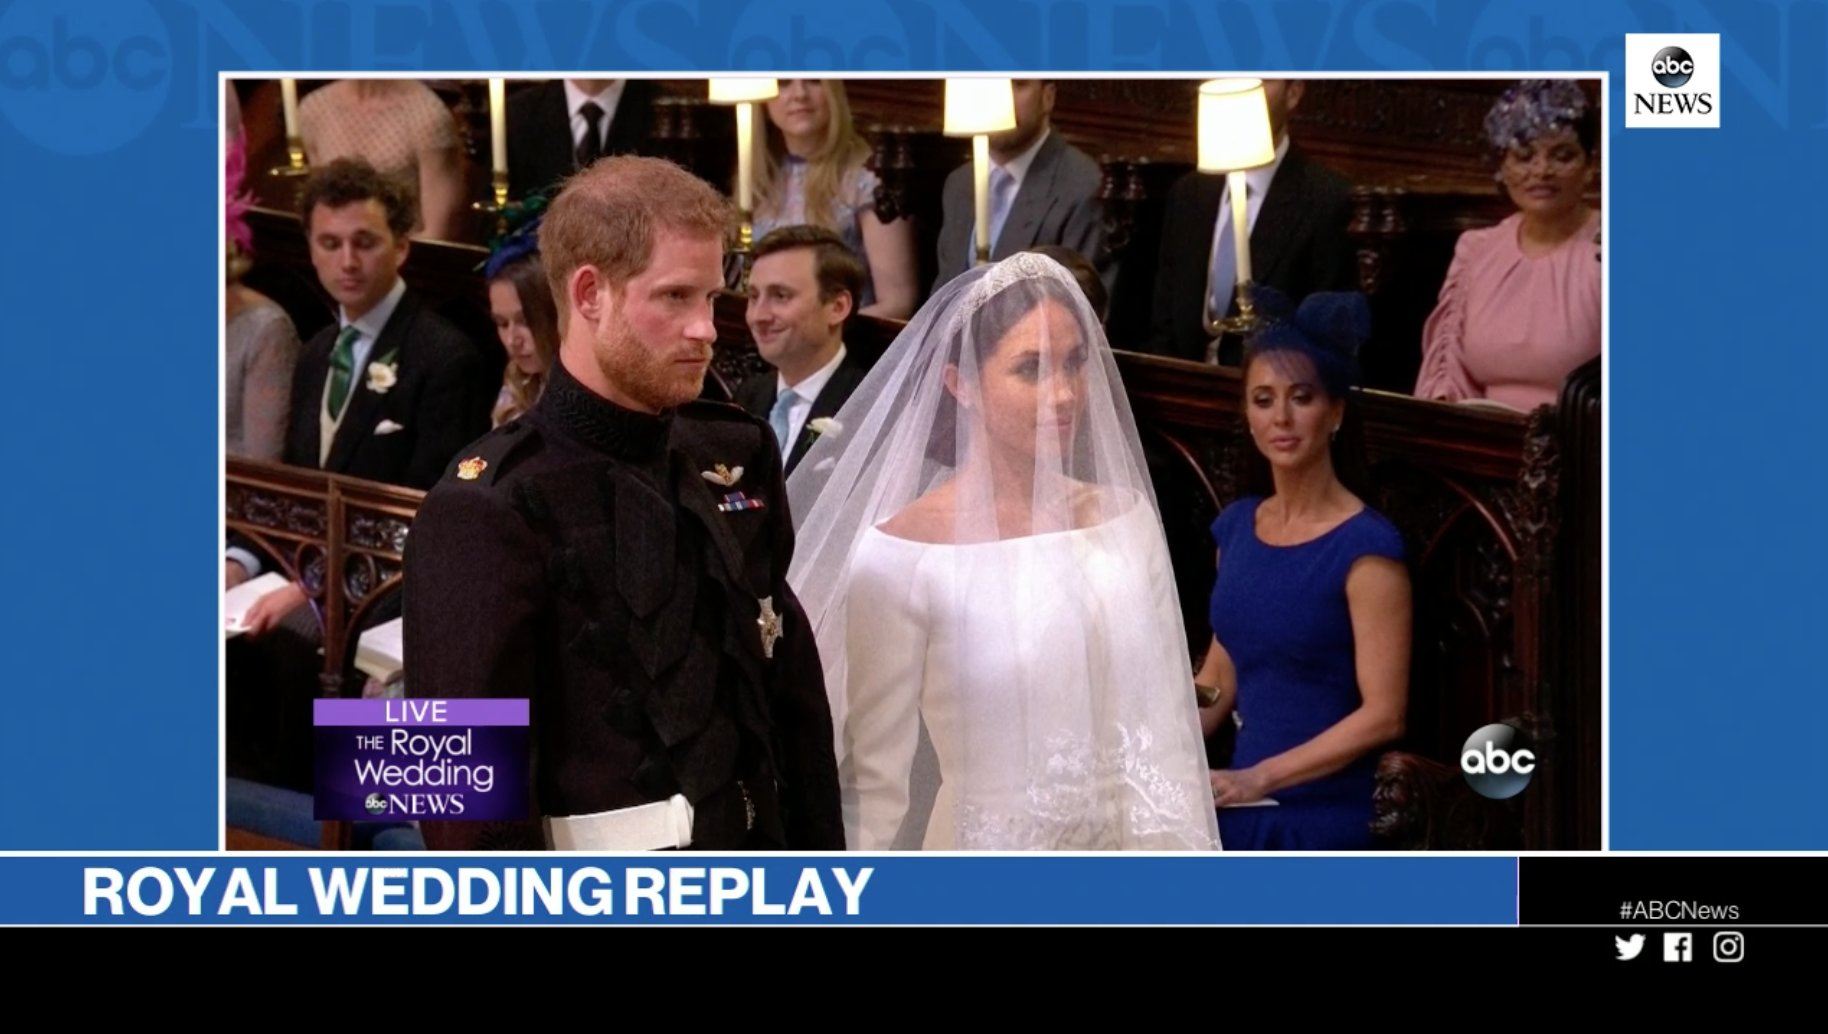 We're replaying the entire #RoyalWedding right now online!   WATCH HERE: https://t.co/xButFim2ca https://t.co/Q6K3fI2R1e